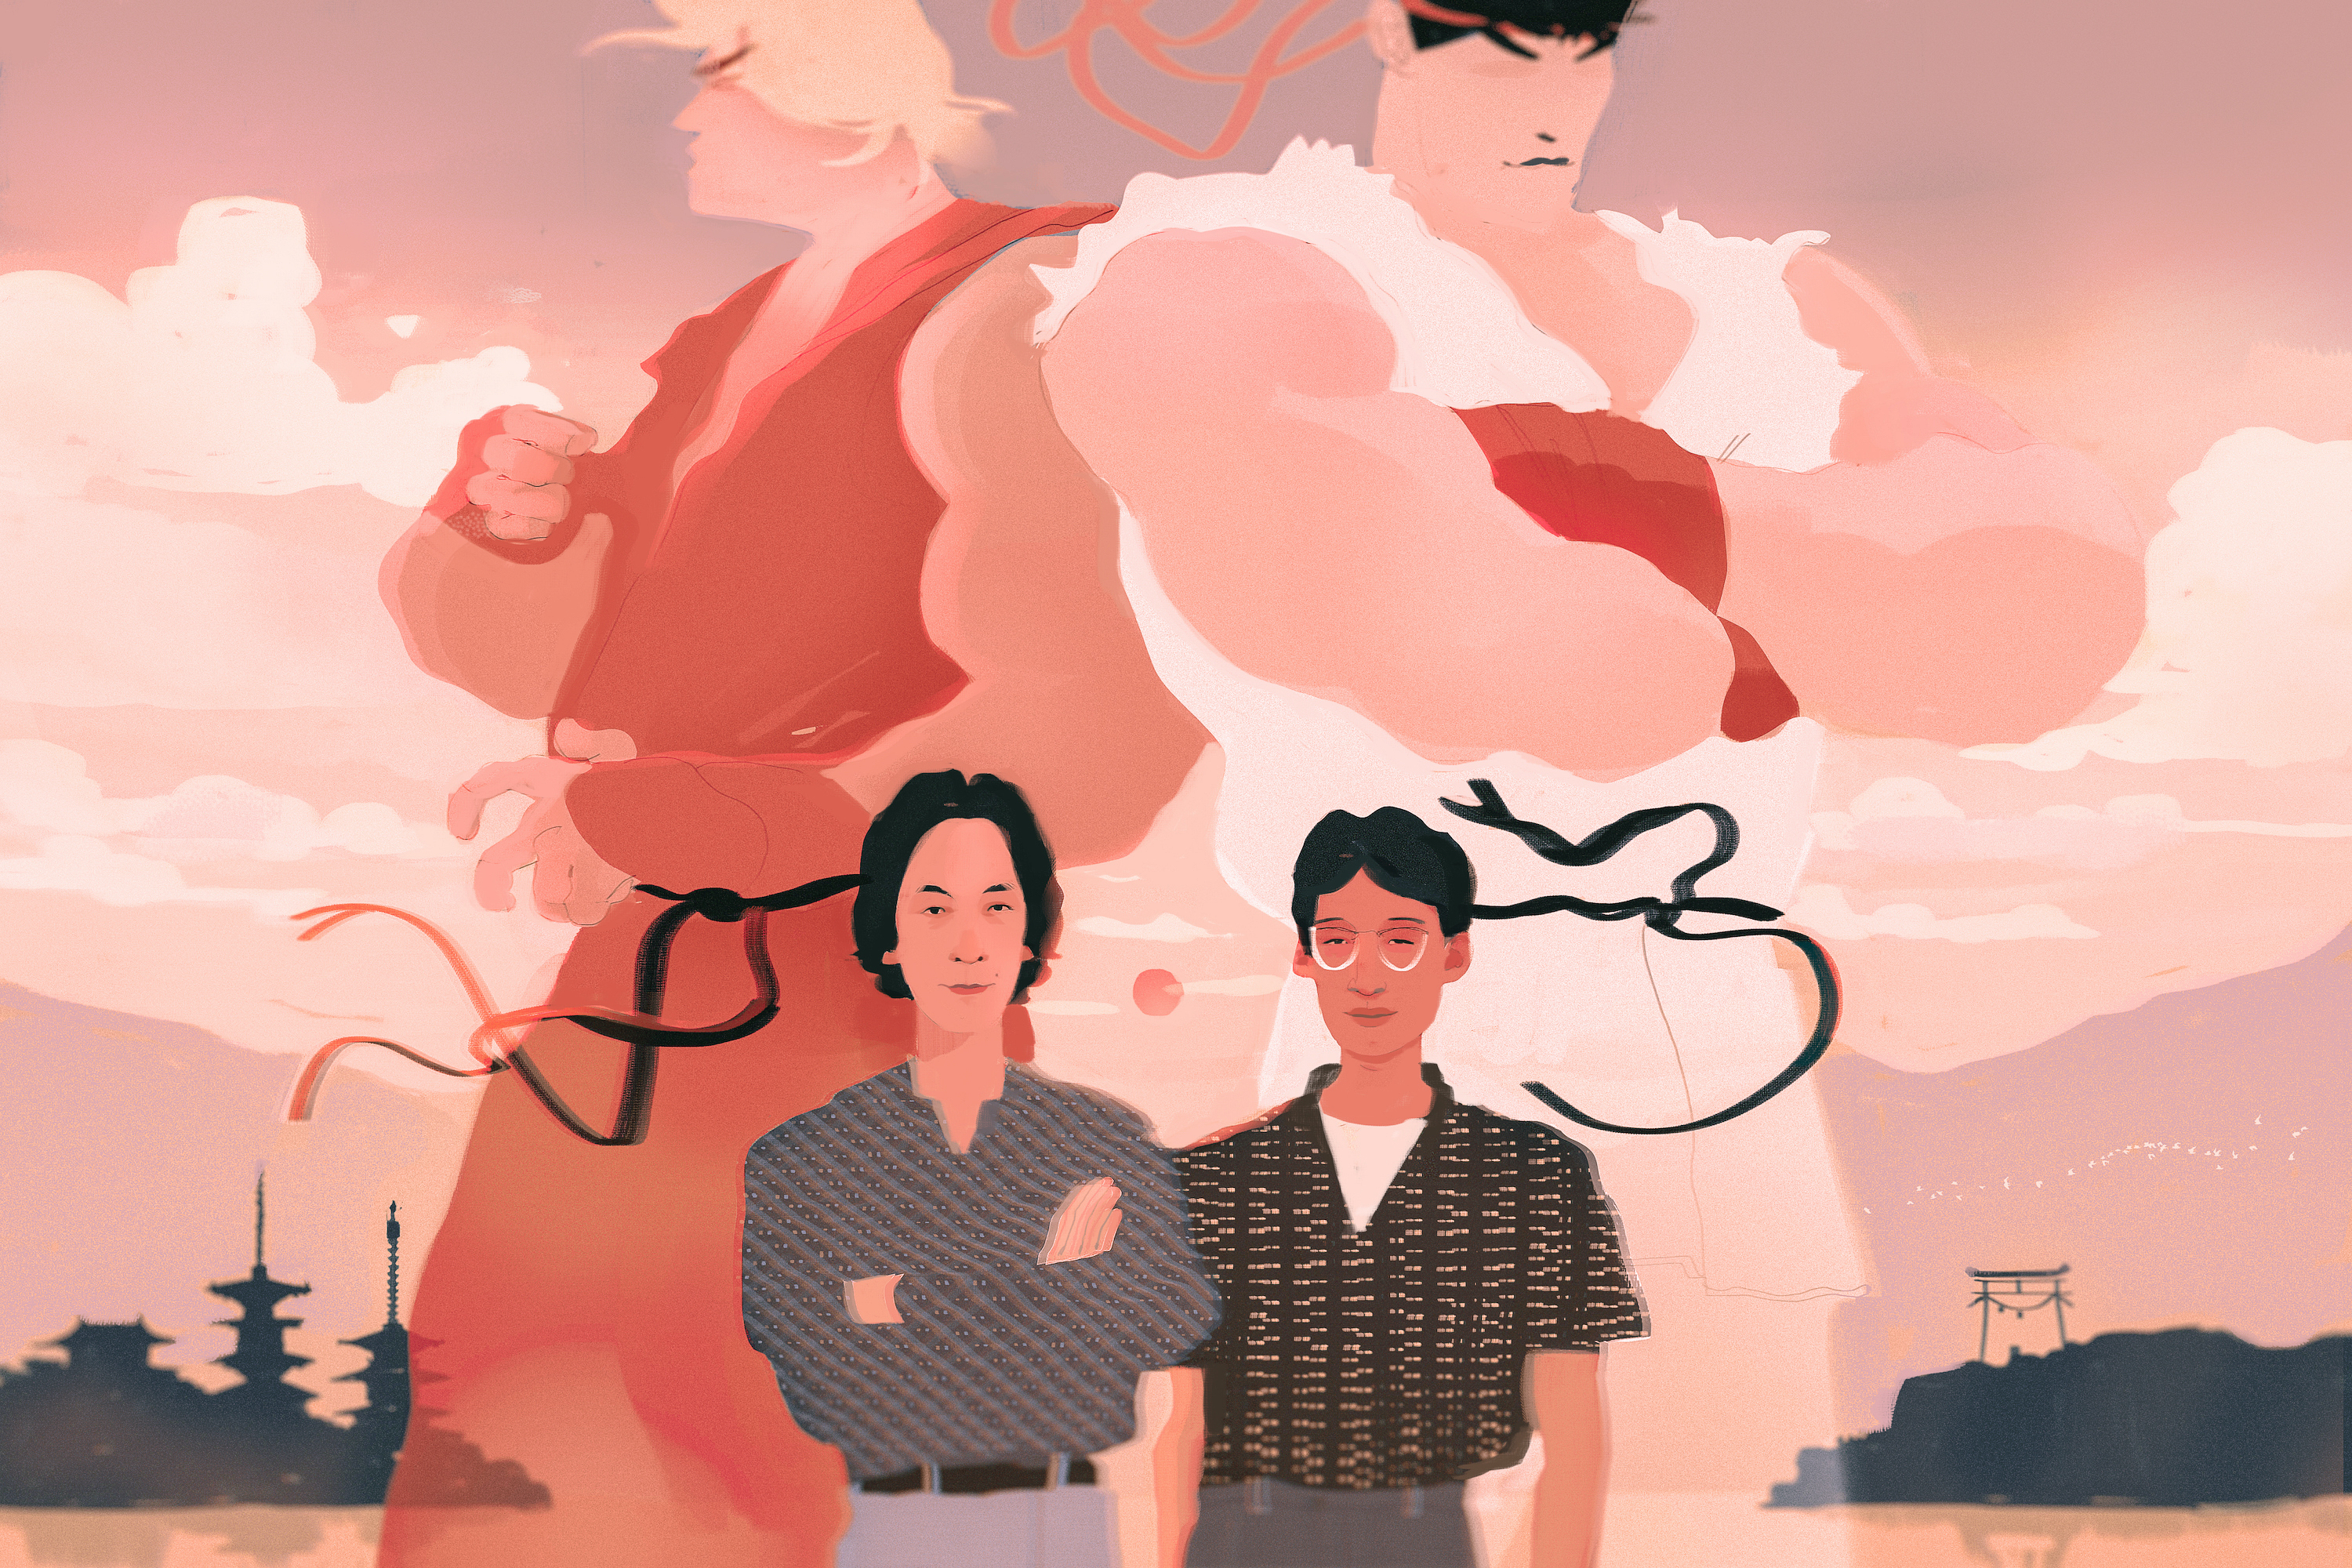 Illustration of two men standing in front of two towering characters from the Street Fighter video game